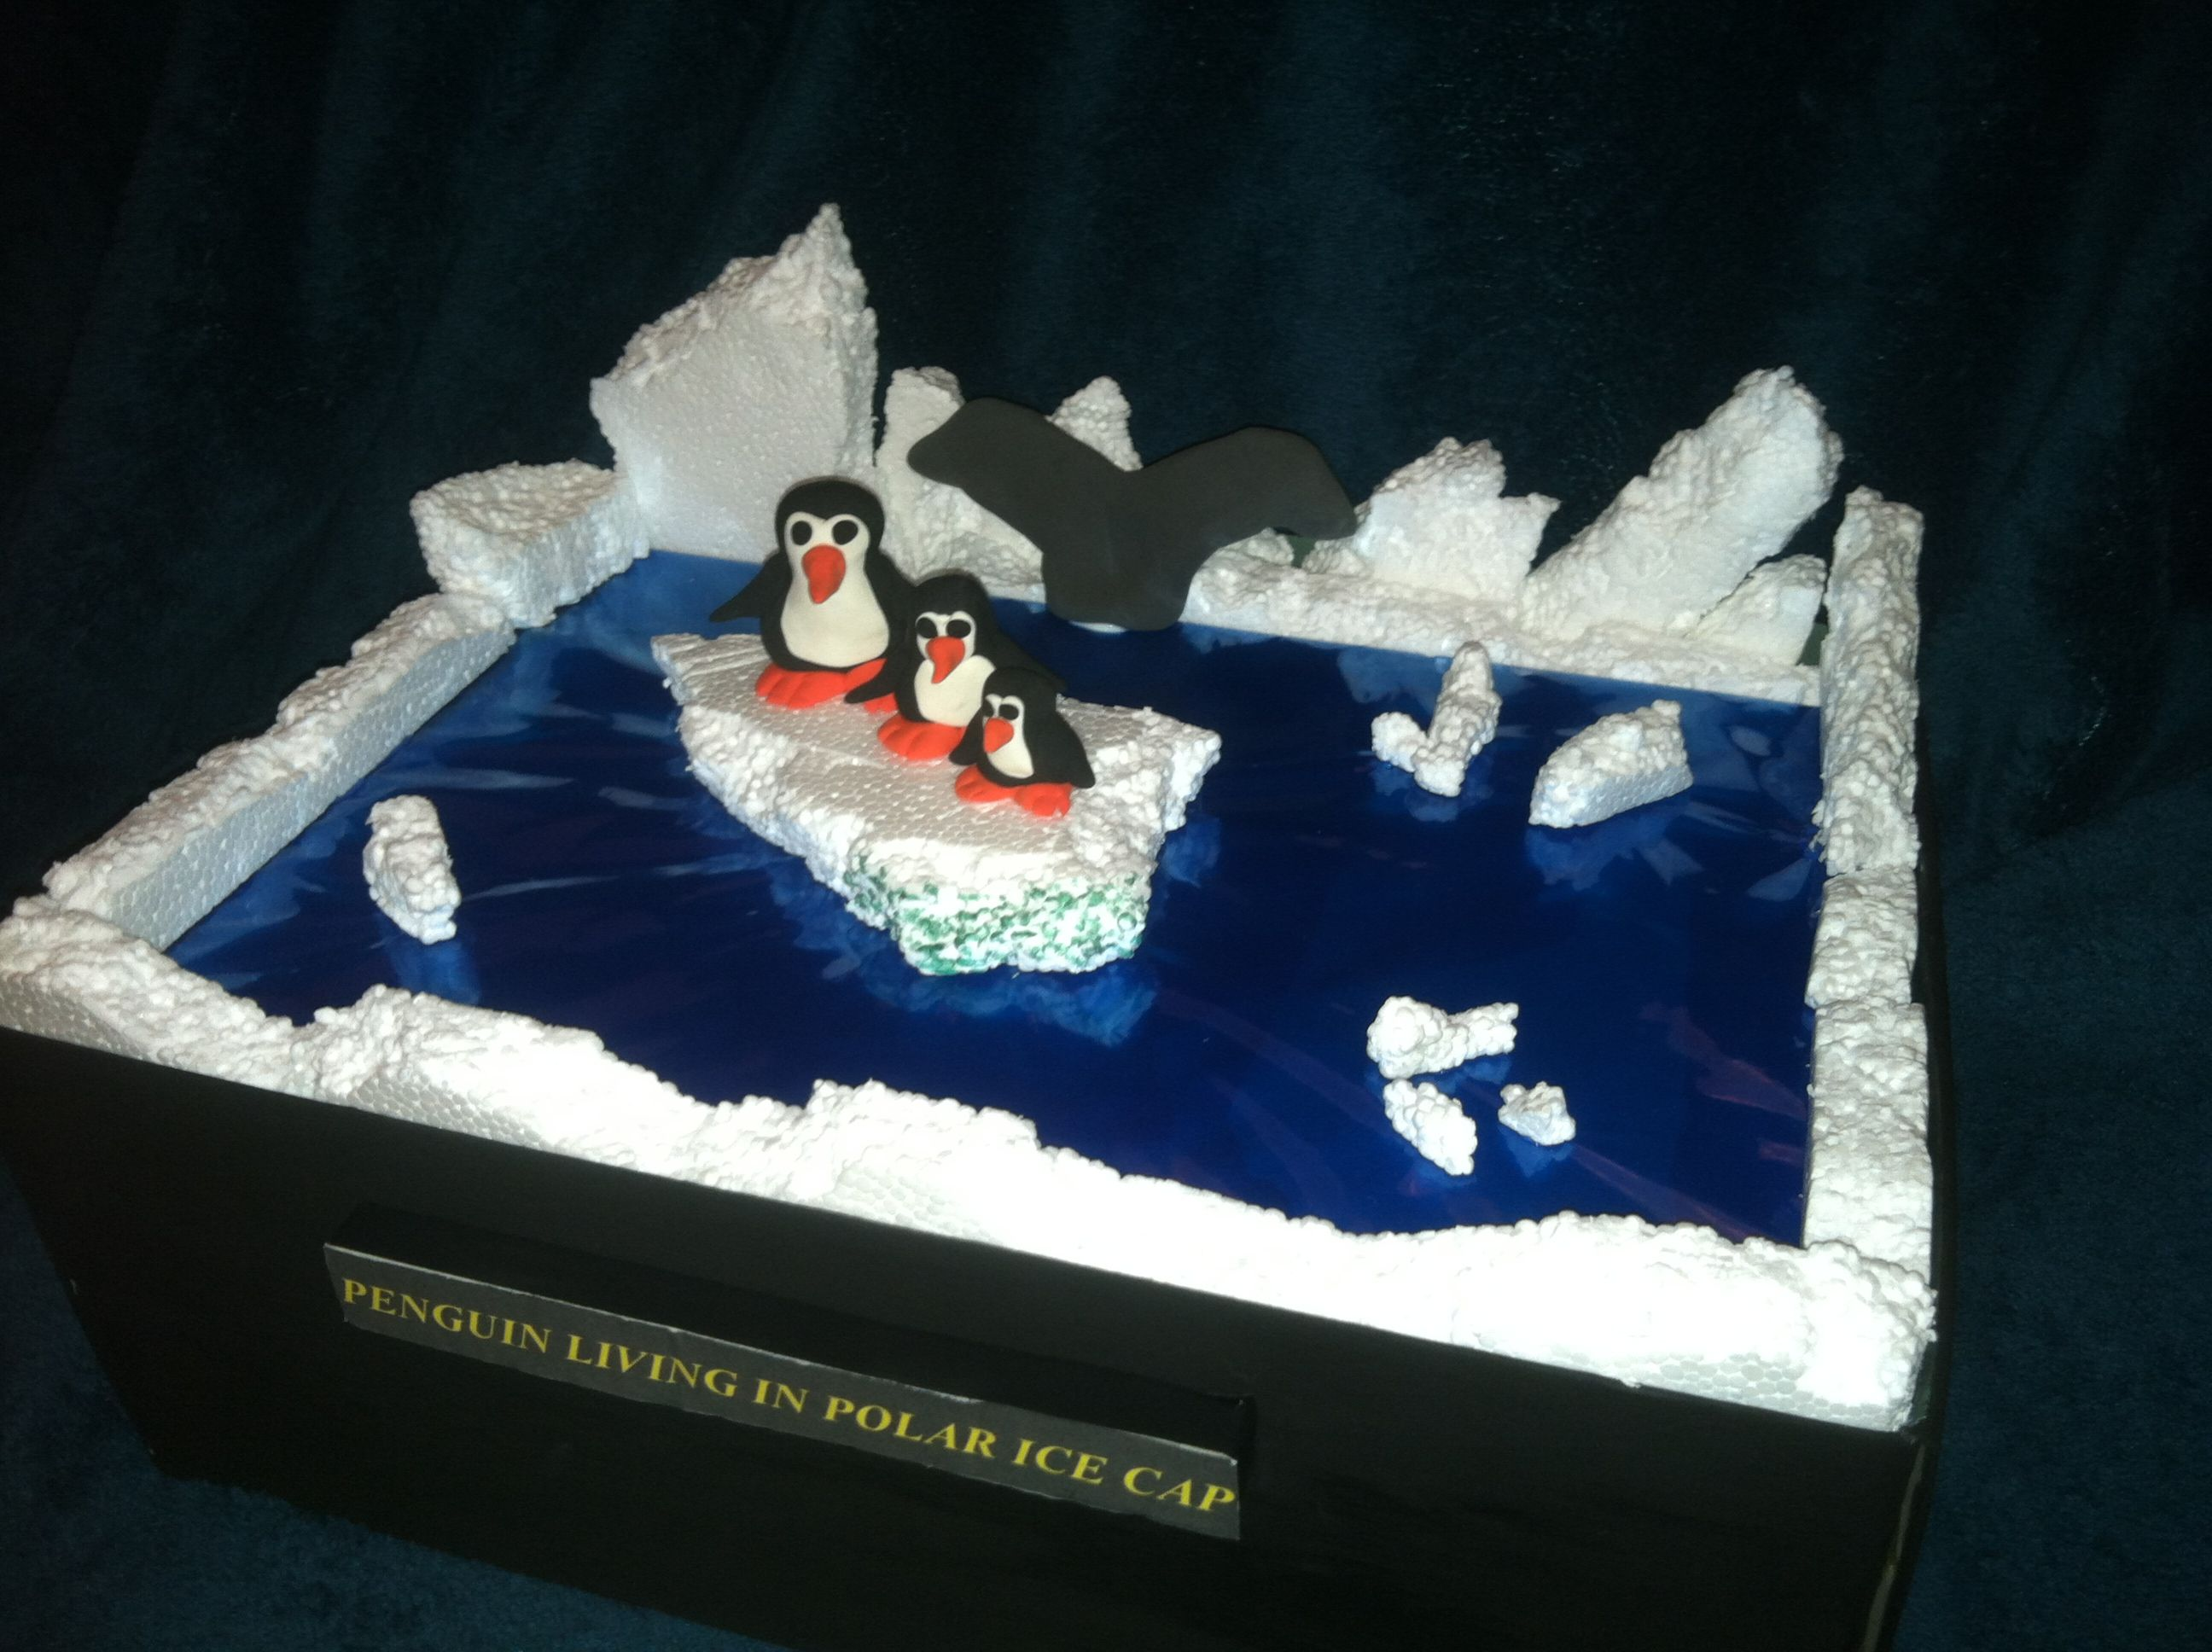 my daughters diorama on penguins childrens art